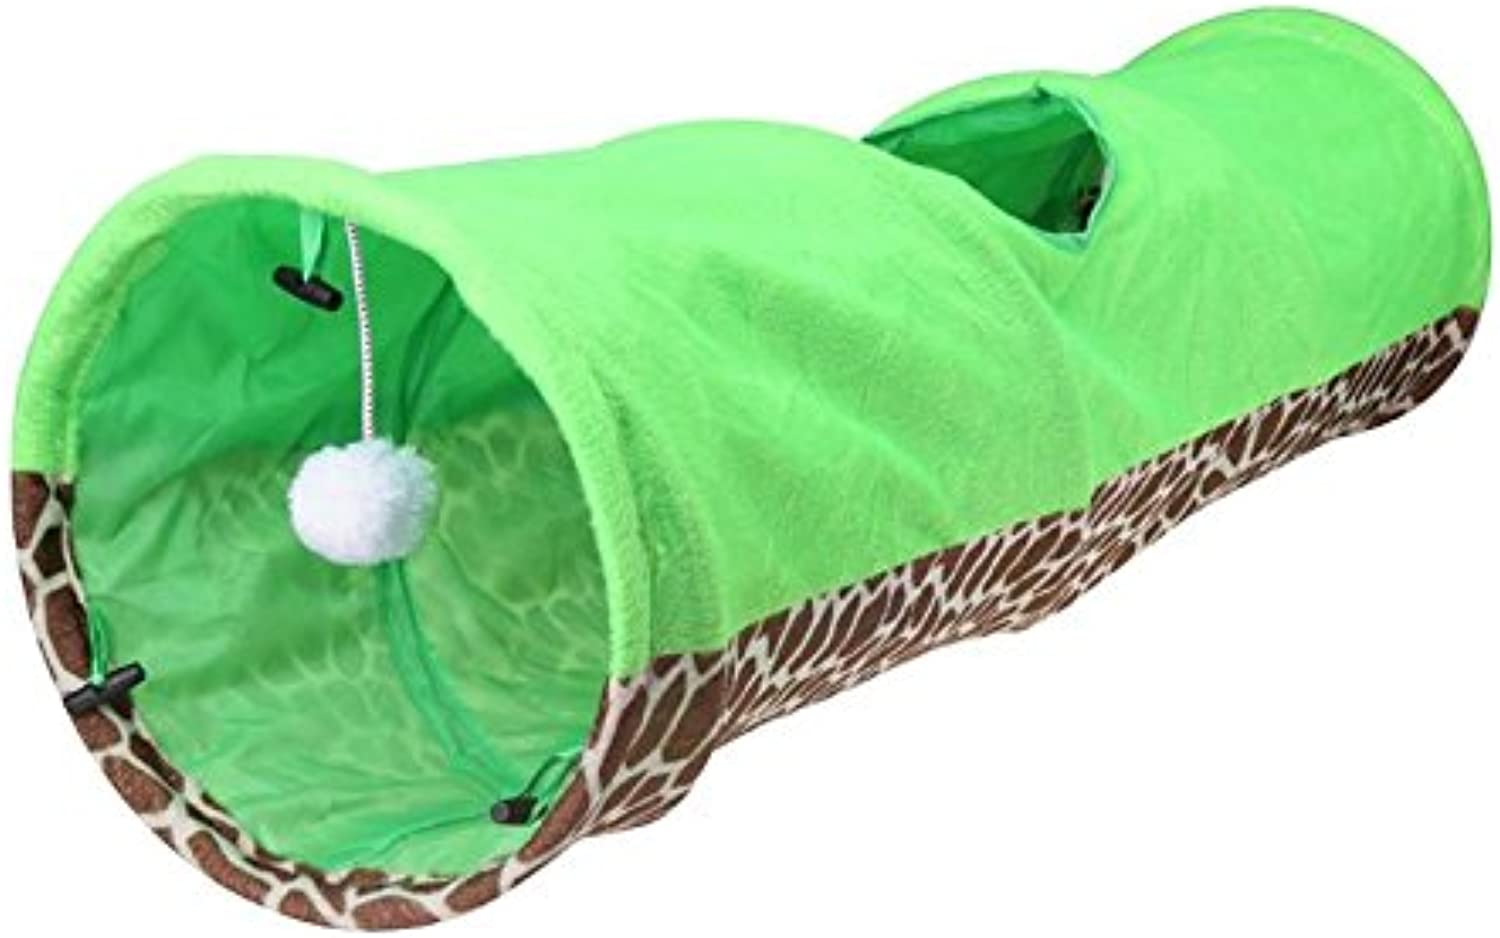 02 Pet Tunnel Cat Play Tunnel Leopard Print Crinkly Cat Fun Long Tunnel Kitten Play Toy Collapsible Coon Cat Tunnel Bulk Cat Toy